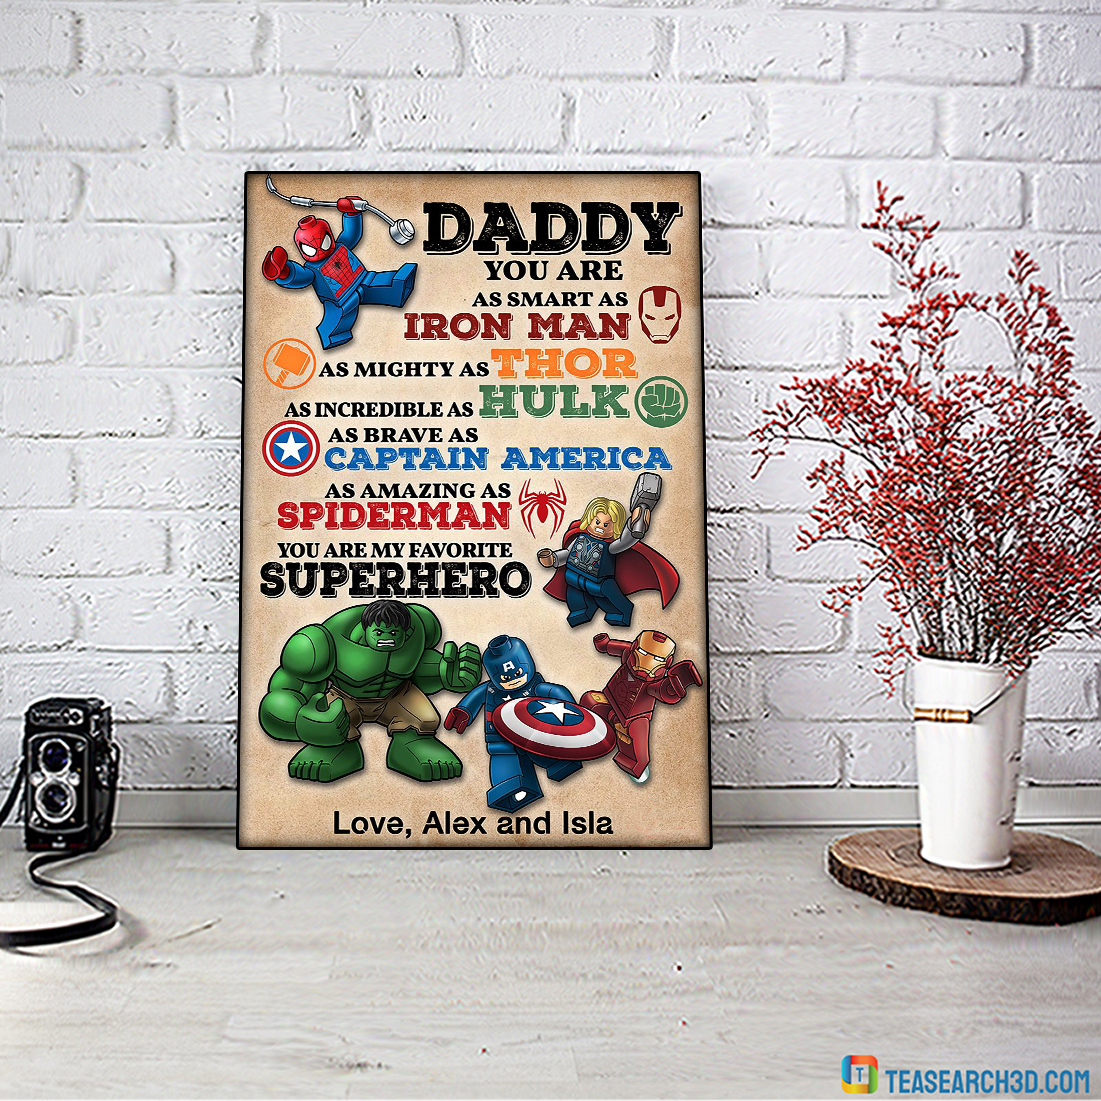 Personalized custom name daddy superhero avengers poster A2